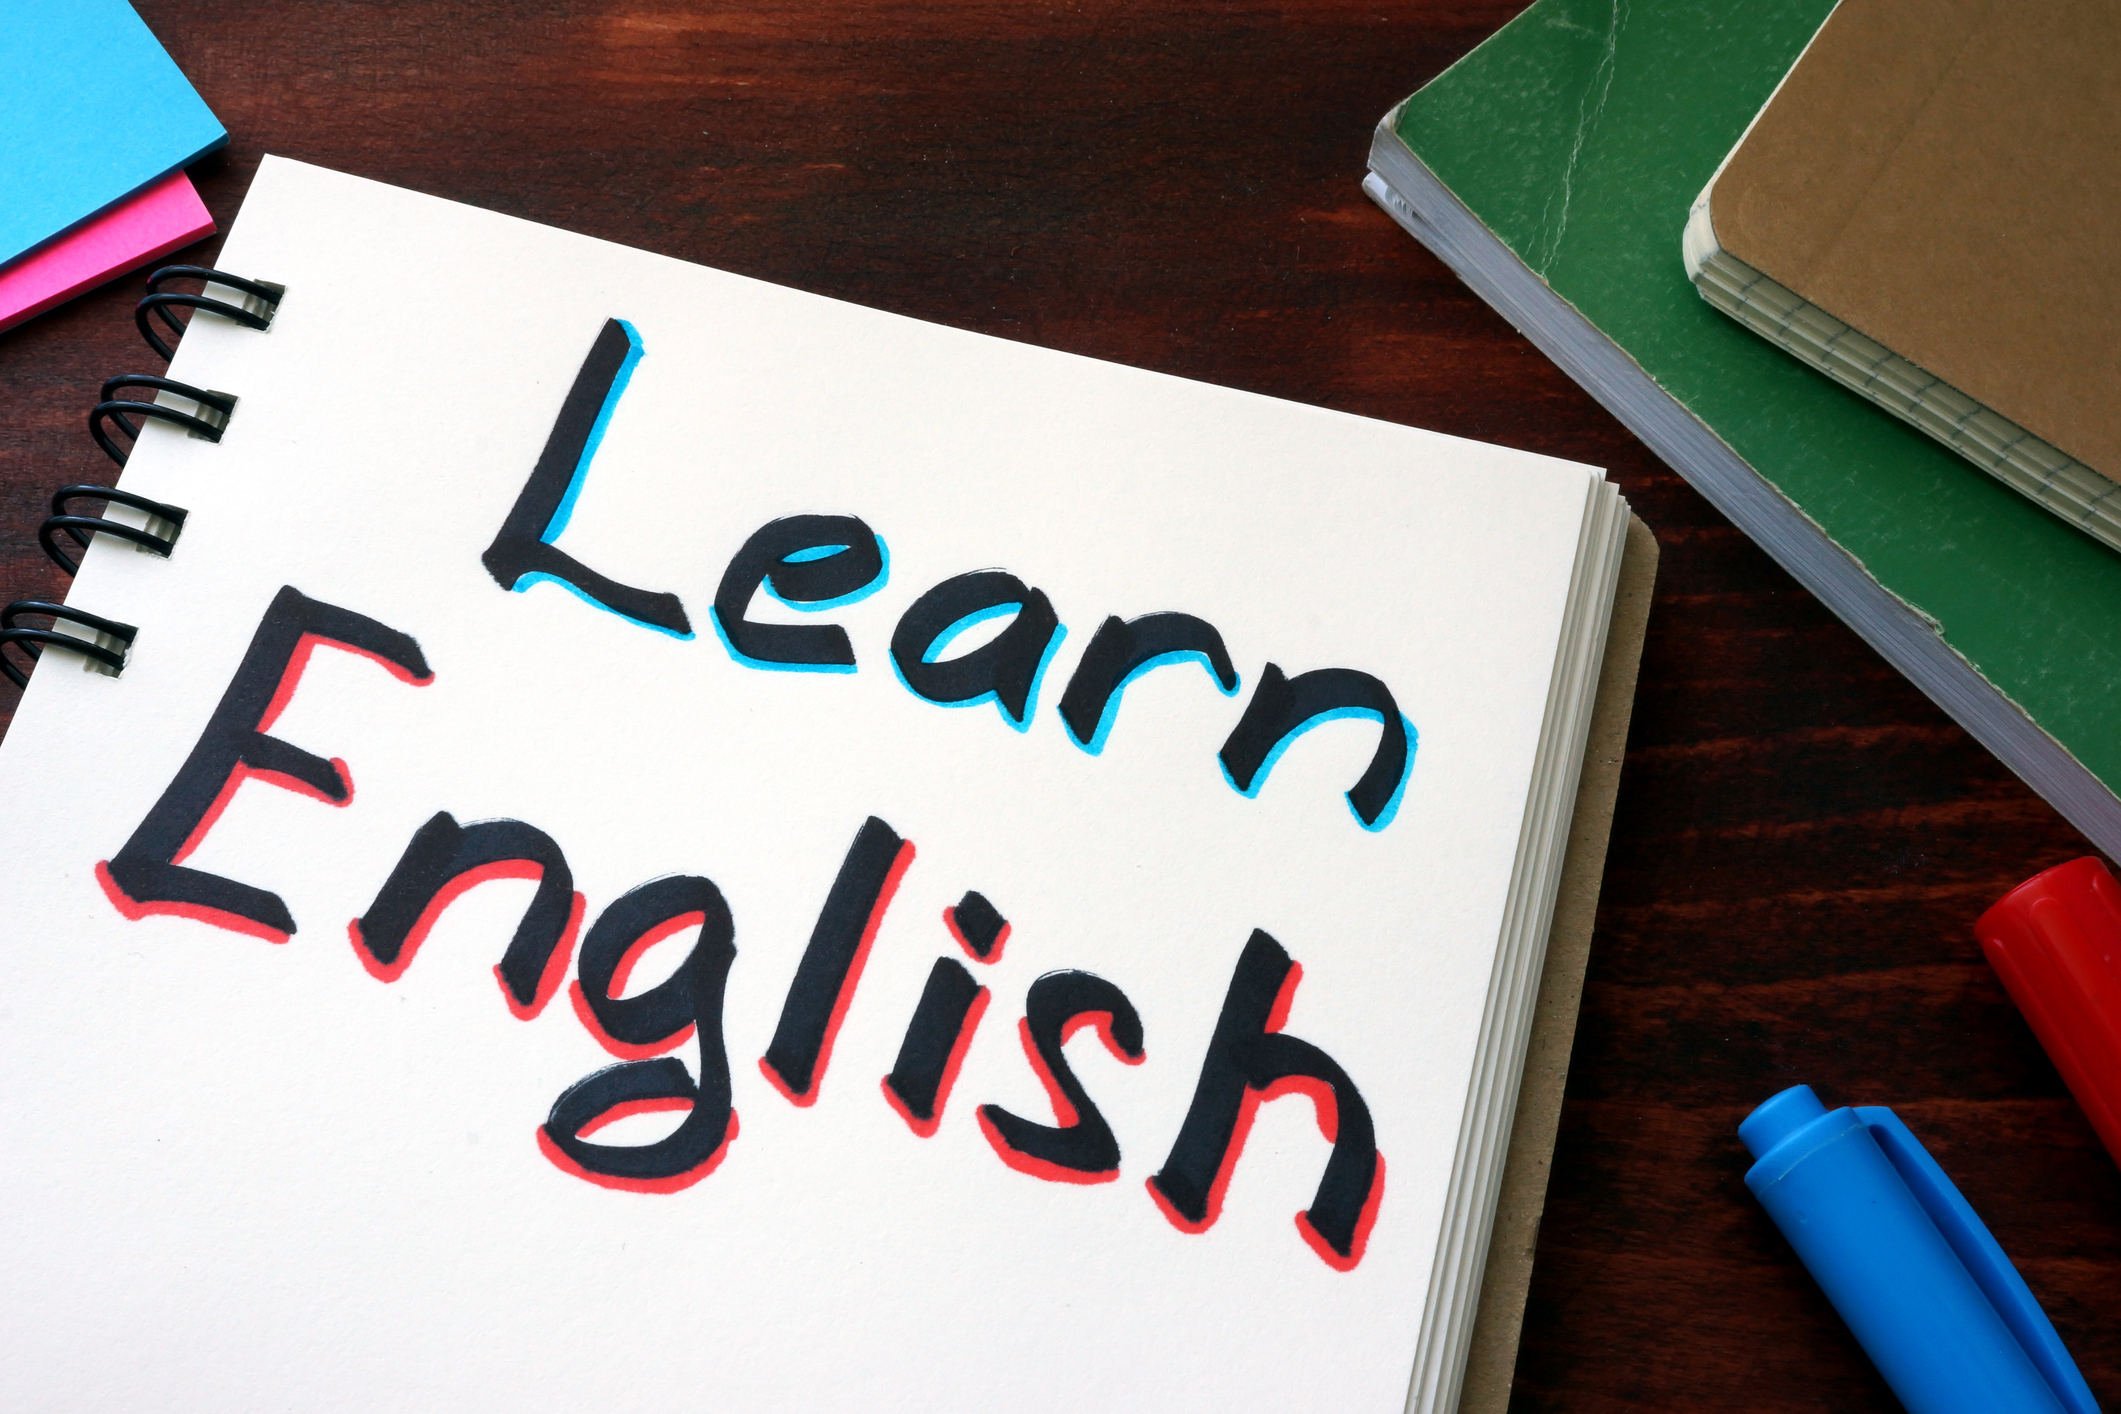 Learn English written on a notepad with marker.